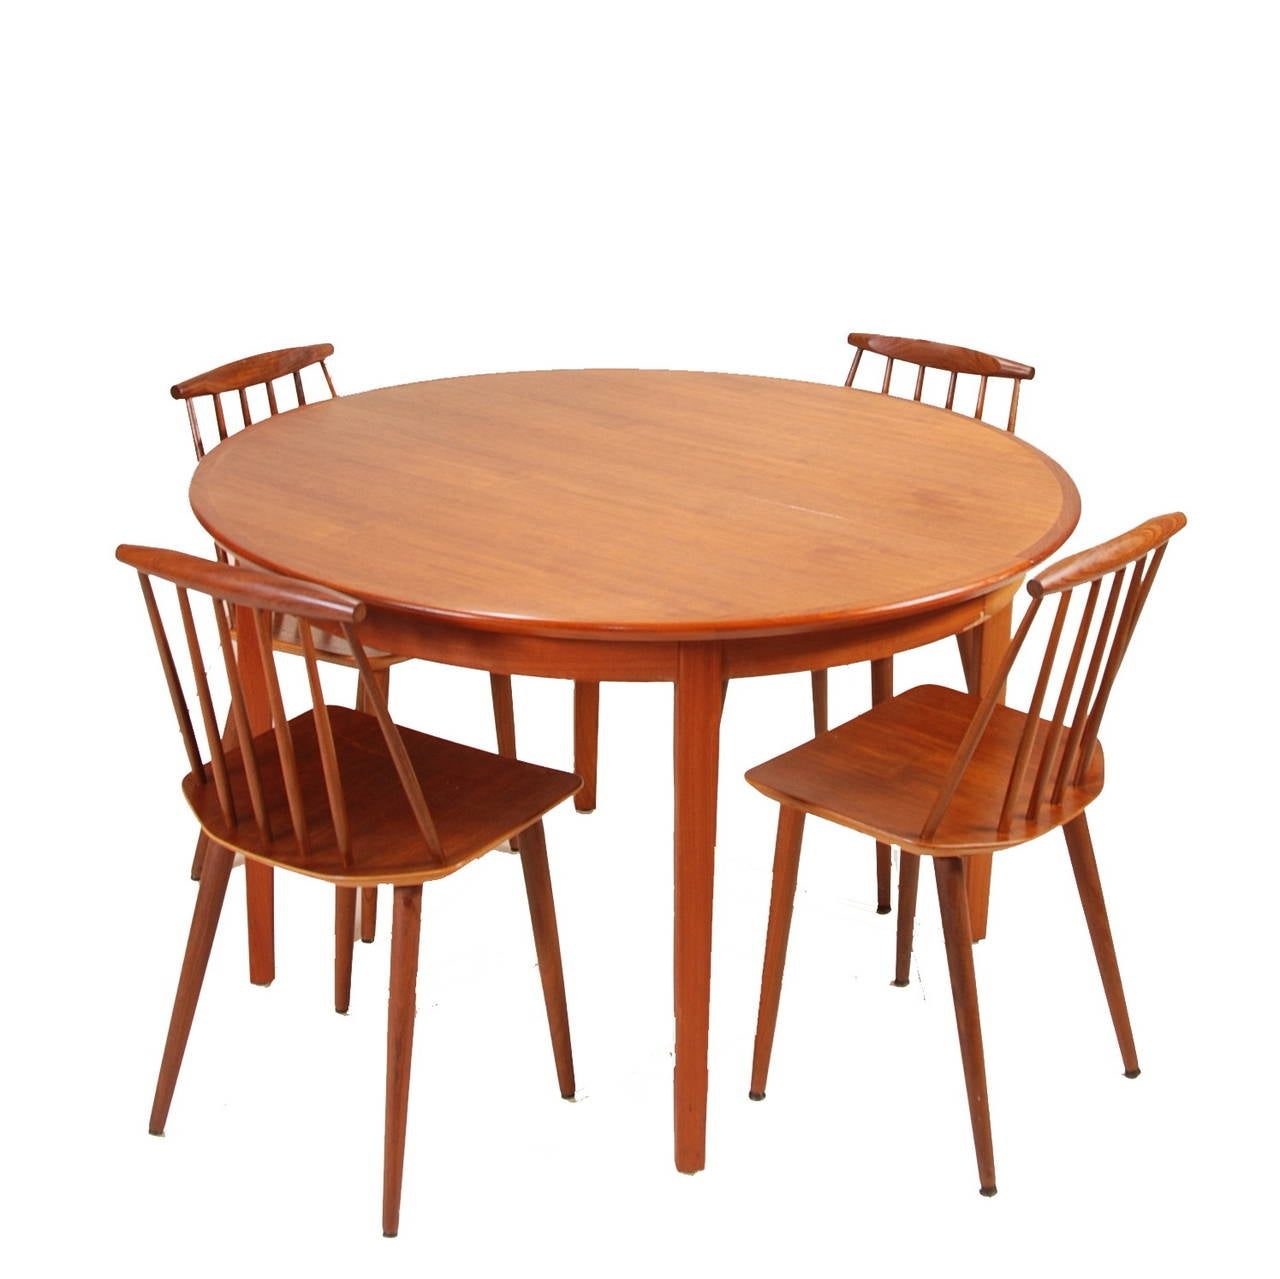 Large danish modern dining table in teak at 1stdibs for Big modern dining table